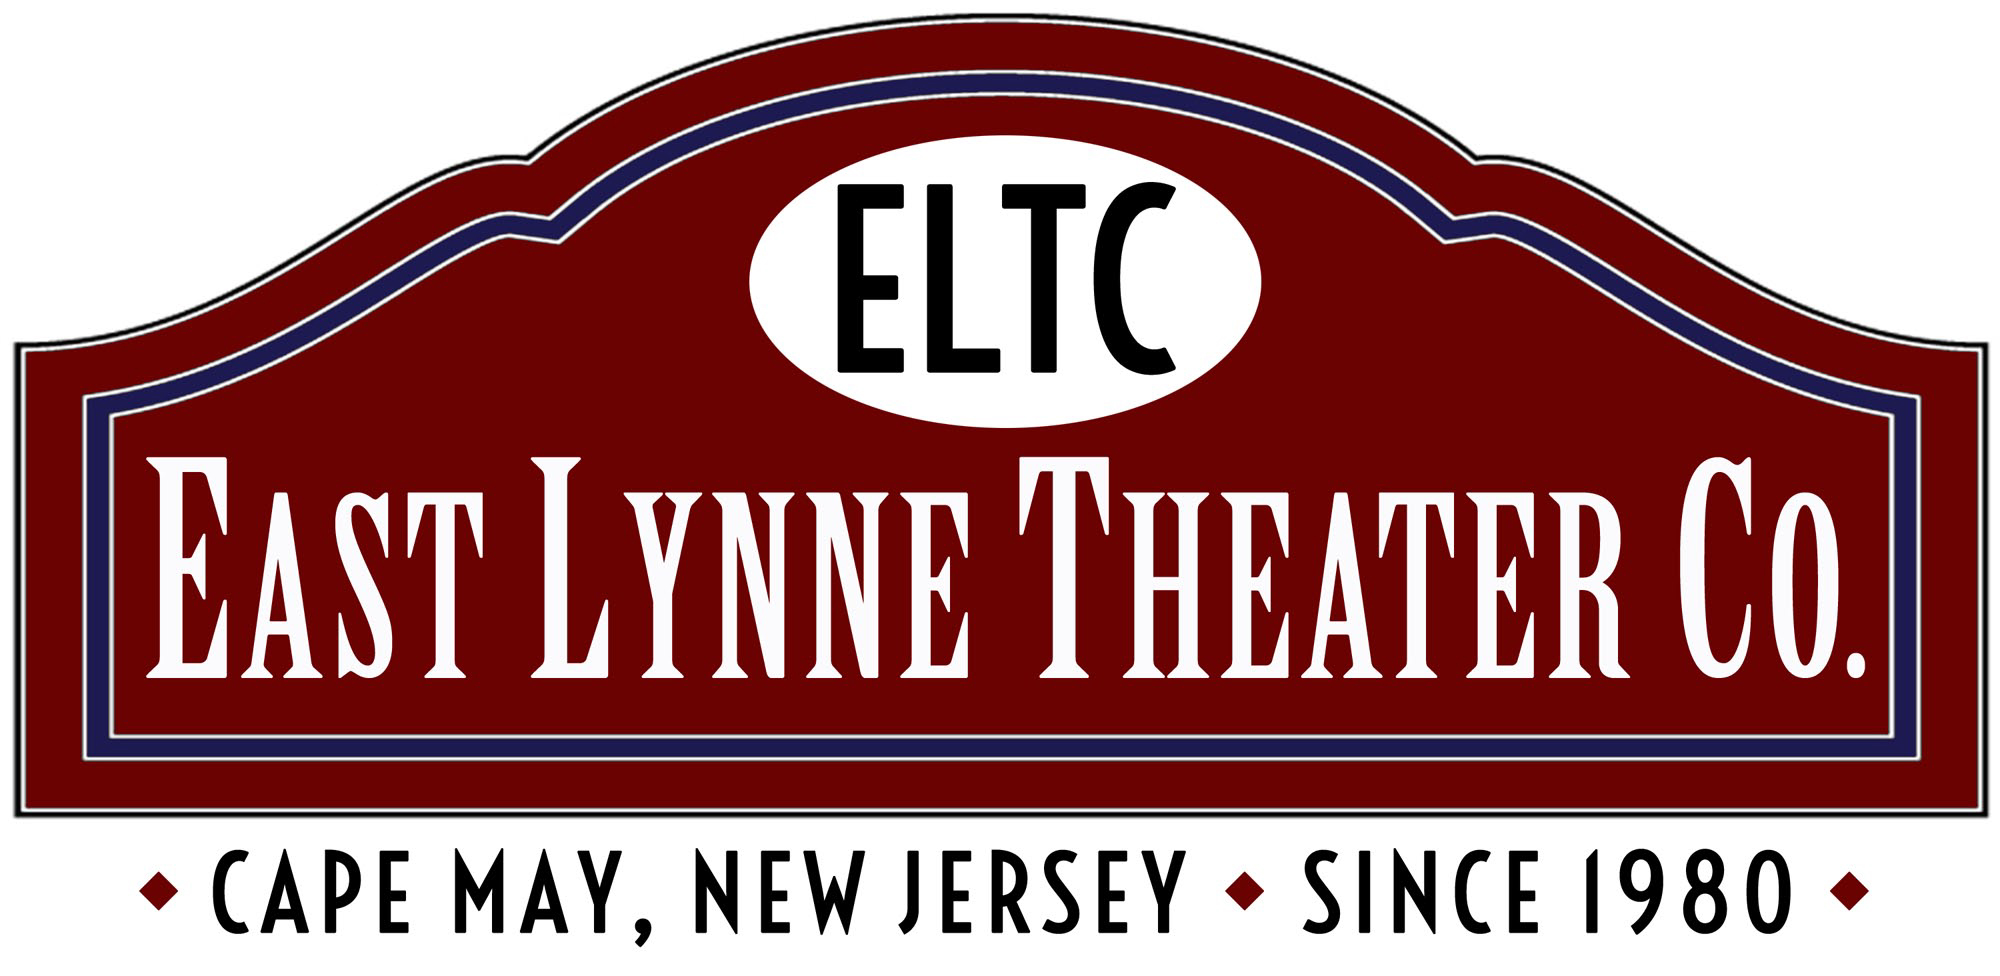 East Lynne Theater Co